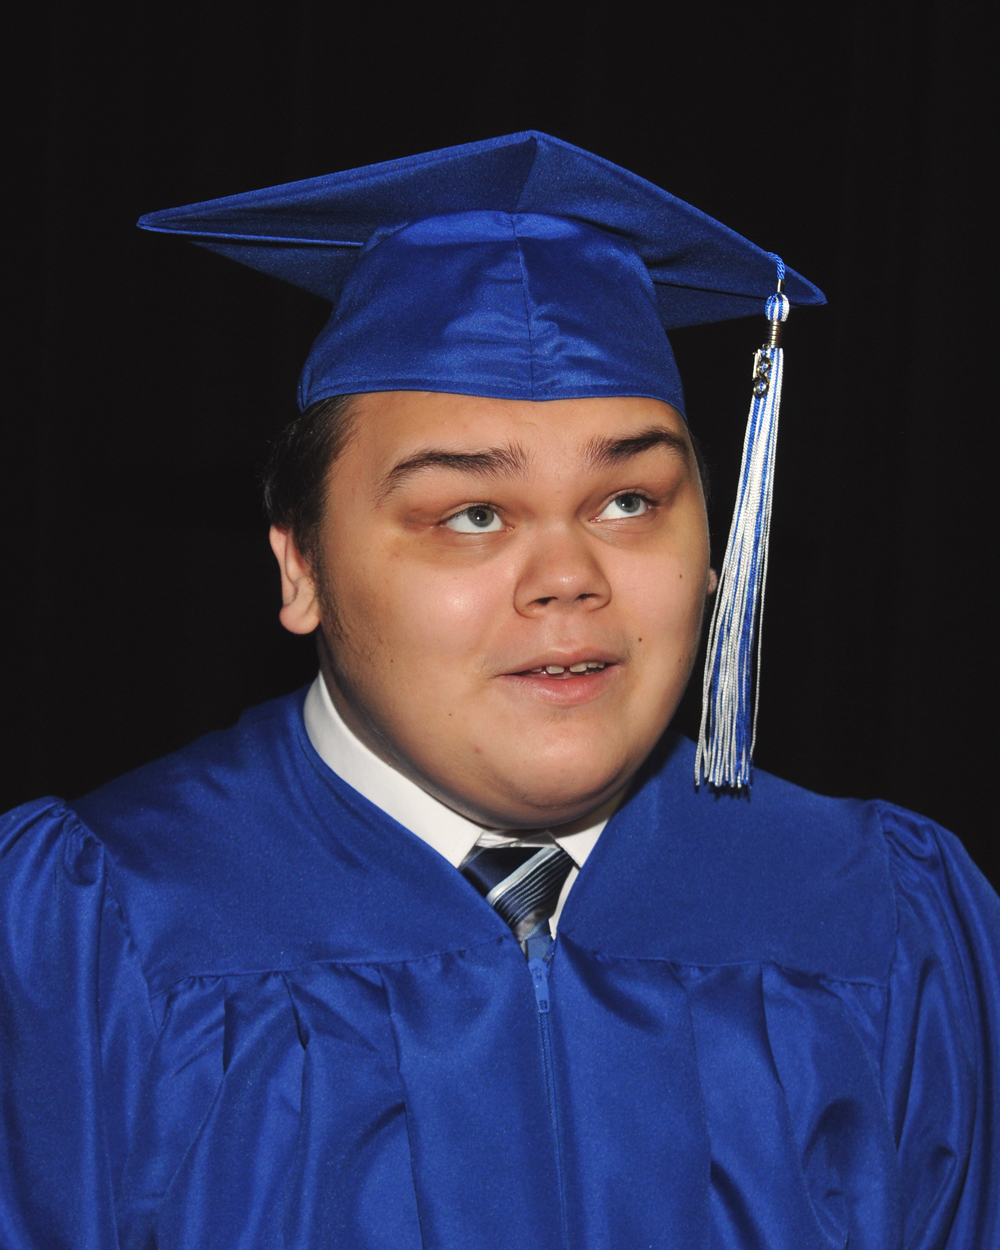 Rodriguez in cap and gown.